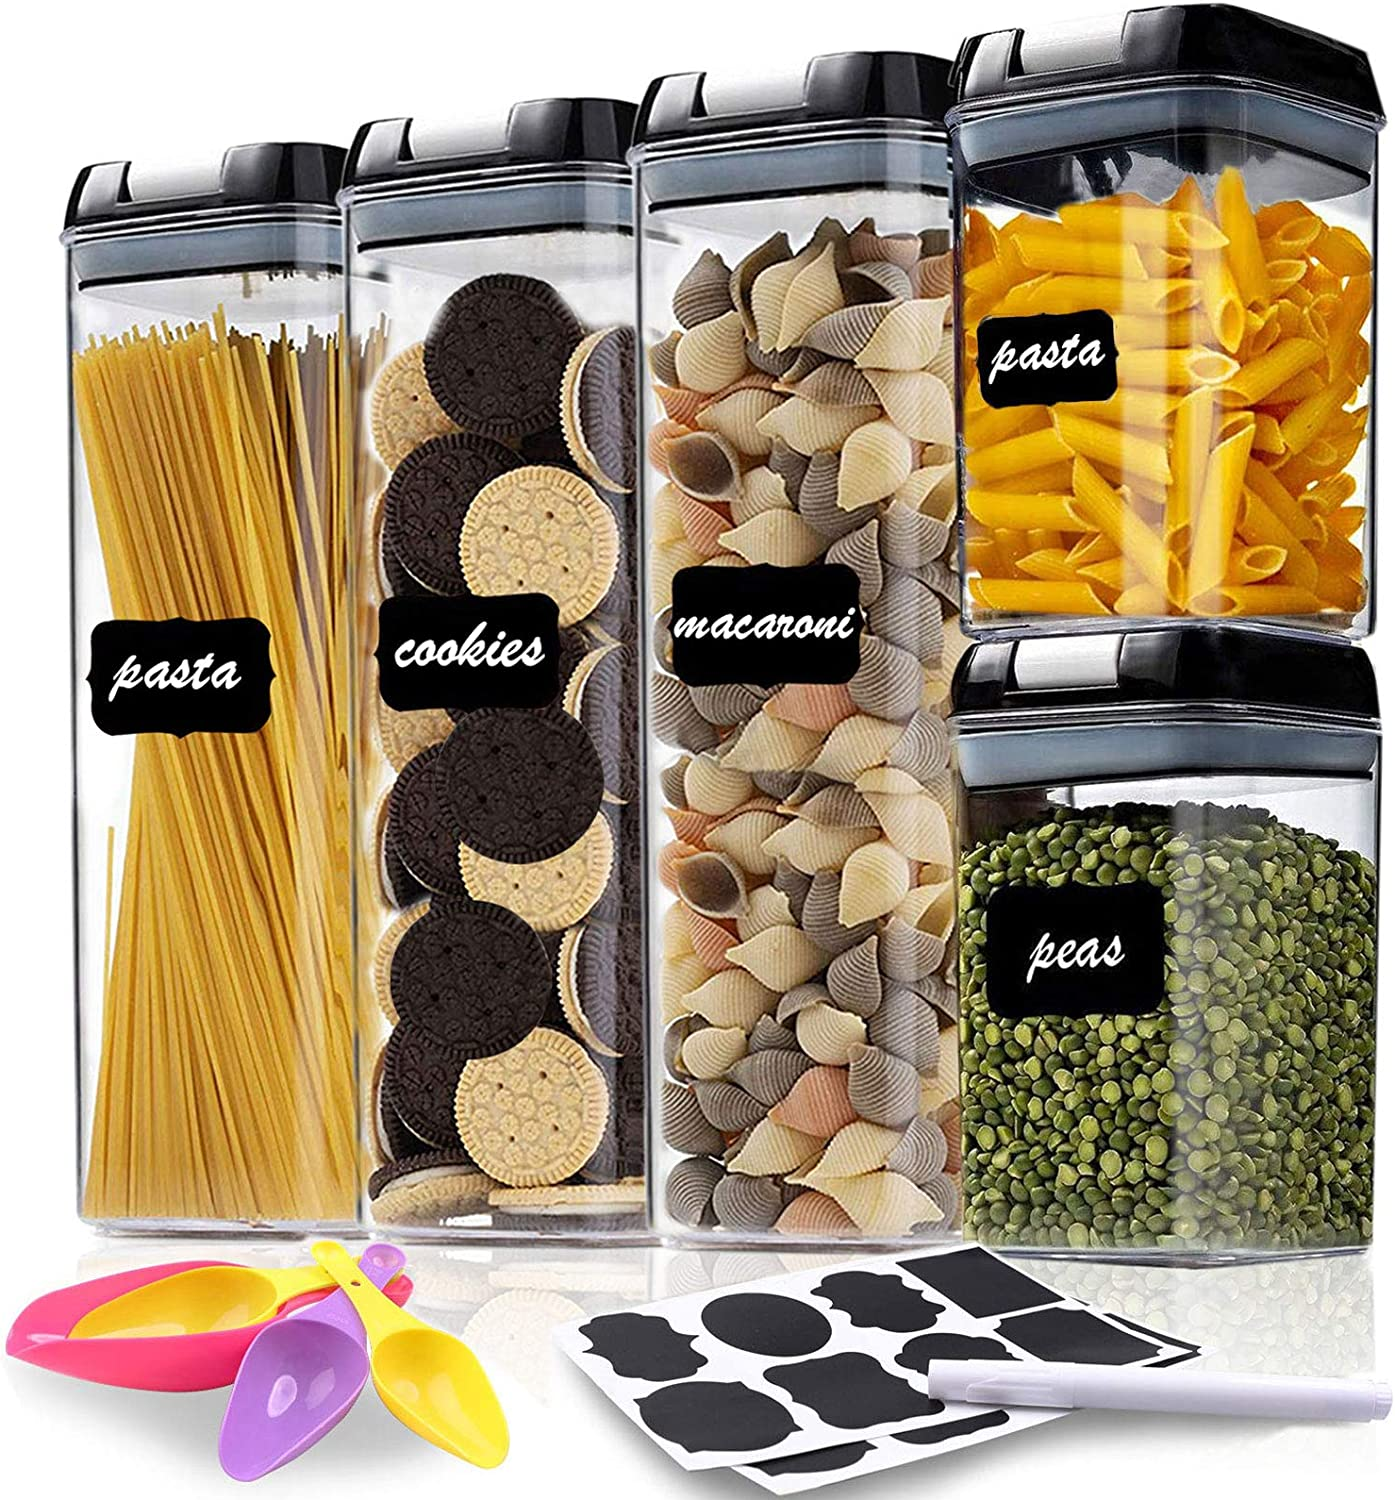 Airtight Food Storage Containers, 5 Pieces Plastic Cereal Containers with Lock Lids, BPA Free Kitchen Pantry Organization Containers Great for Flour, Cereal & Sugar - Include Labels and Marker & Spoon